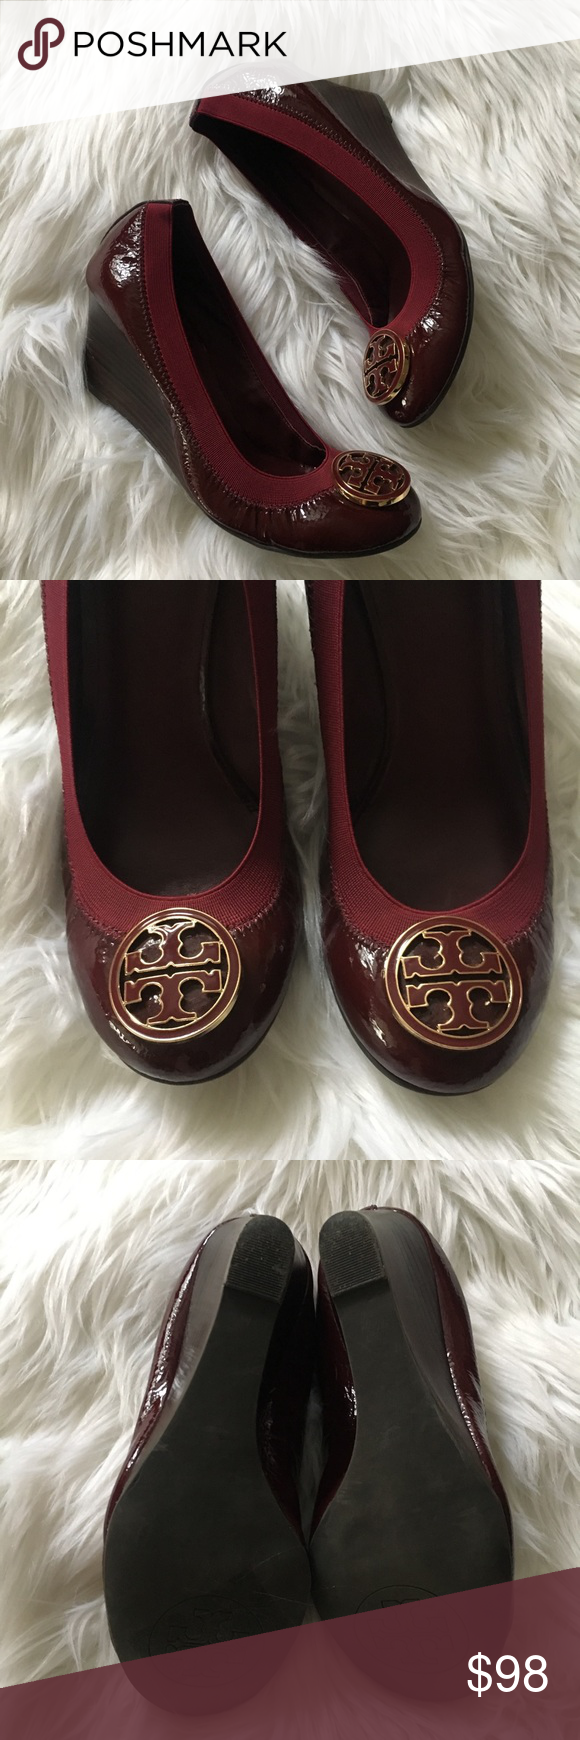 3055fc620705 Tory Burch Patent Caroline Wedge Wine Gold Size 7 Size 7 Very good  condition Patent leather Tory Burch Shoes Wedges